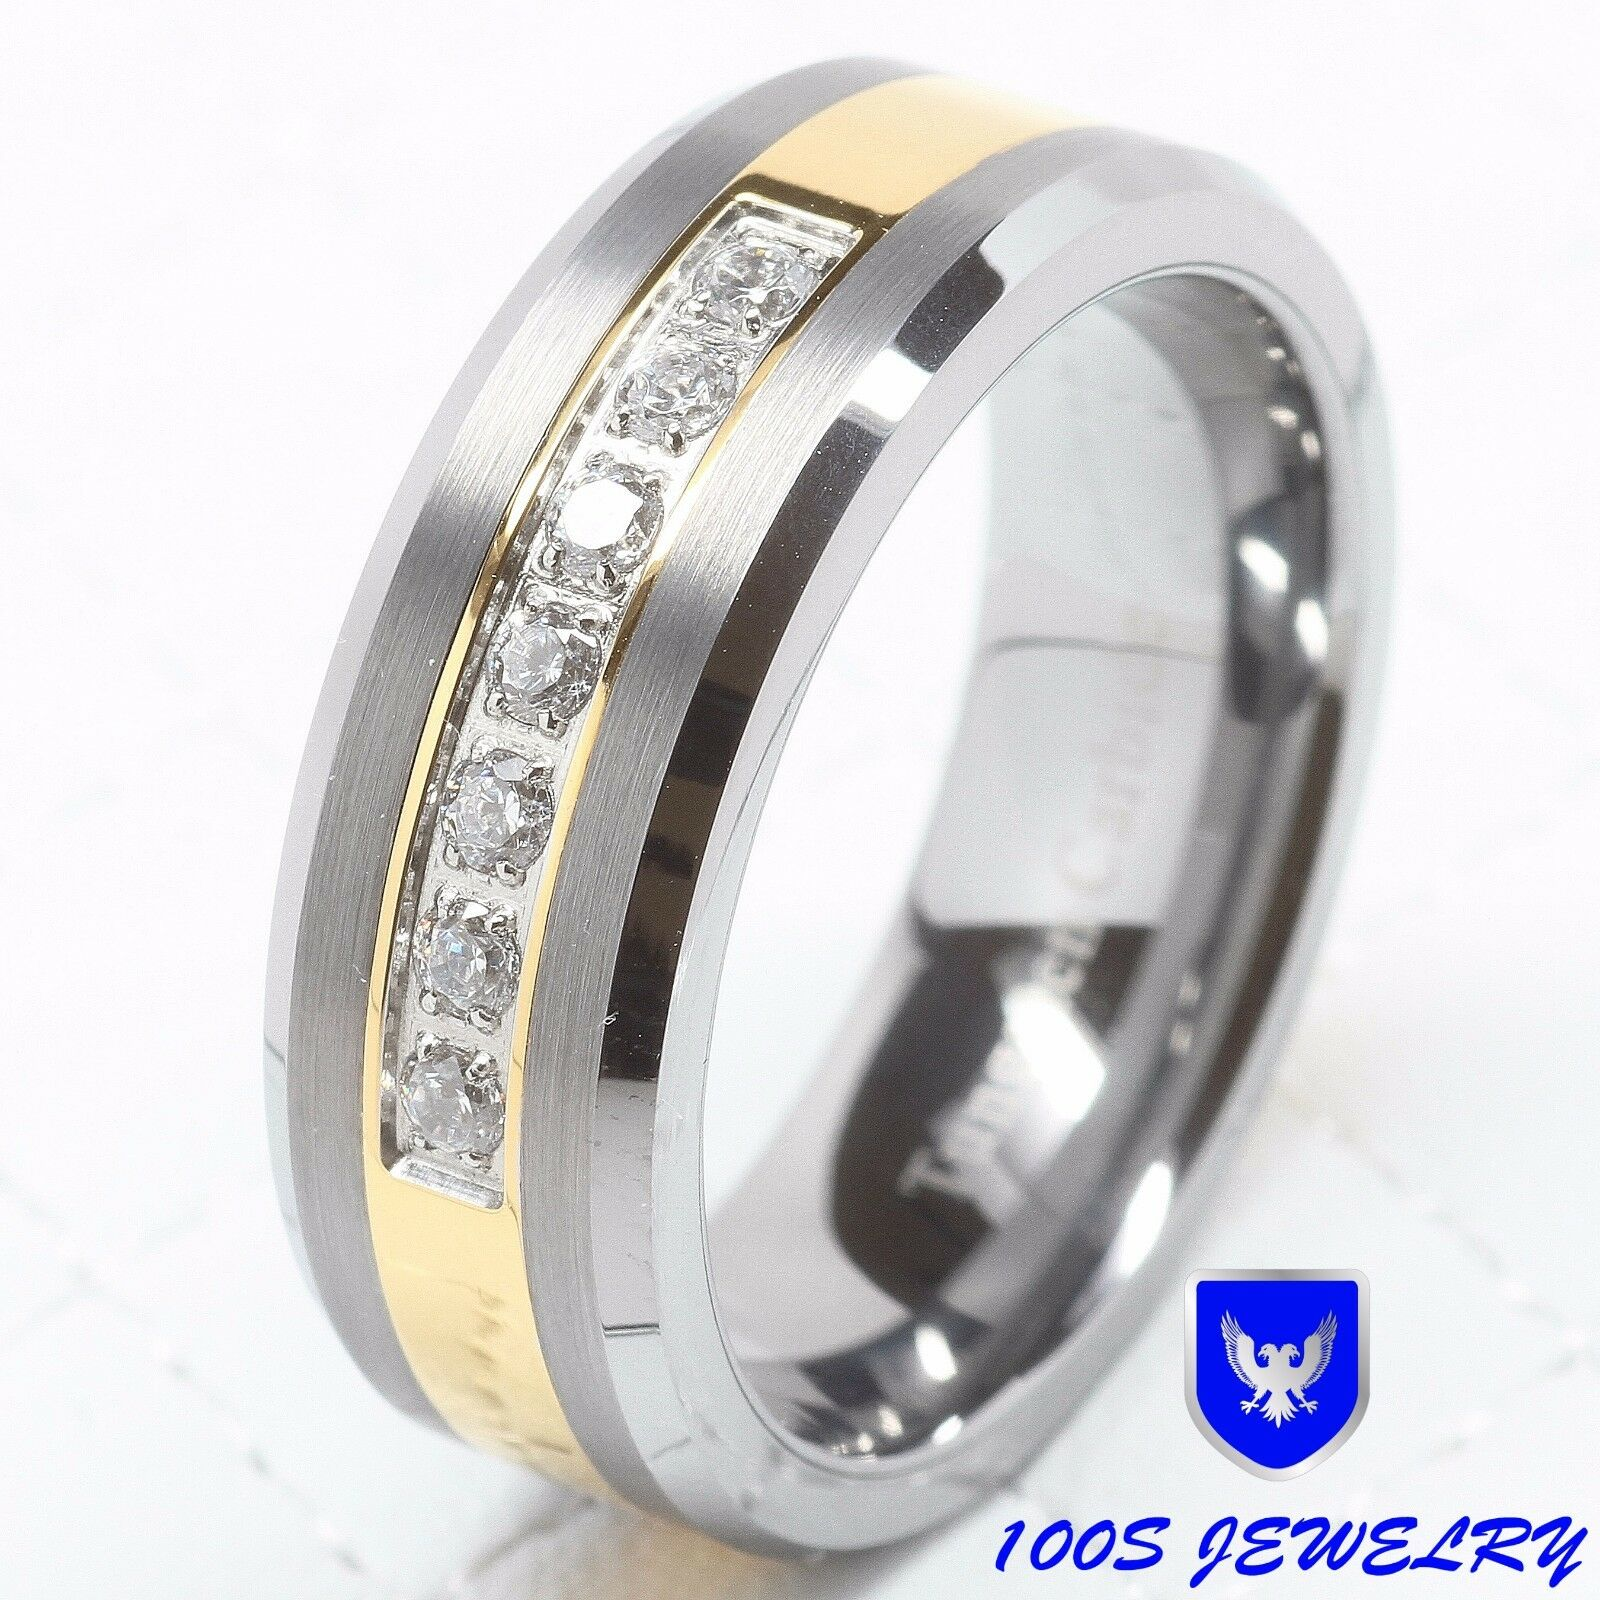 mens tungsten ring diamond inlay center brushed wedding band jewelry size 6 16. Black Bedroom Furniture Sets. Home Design Ideas